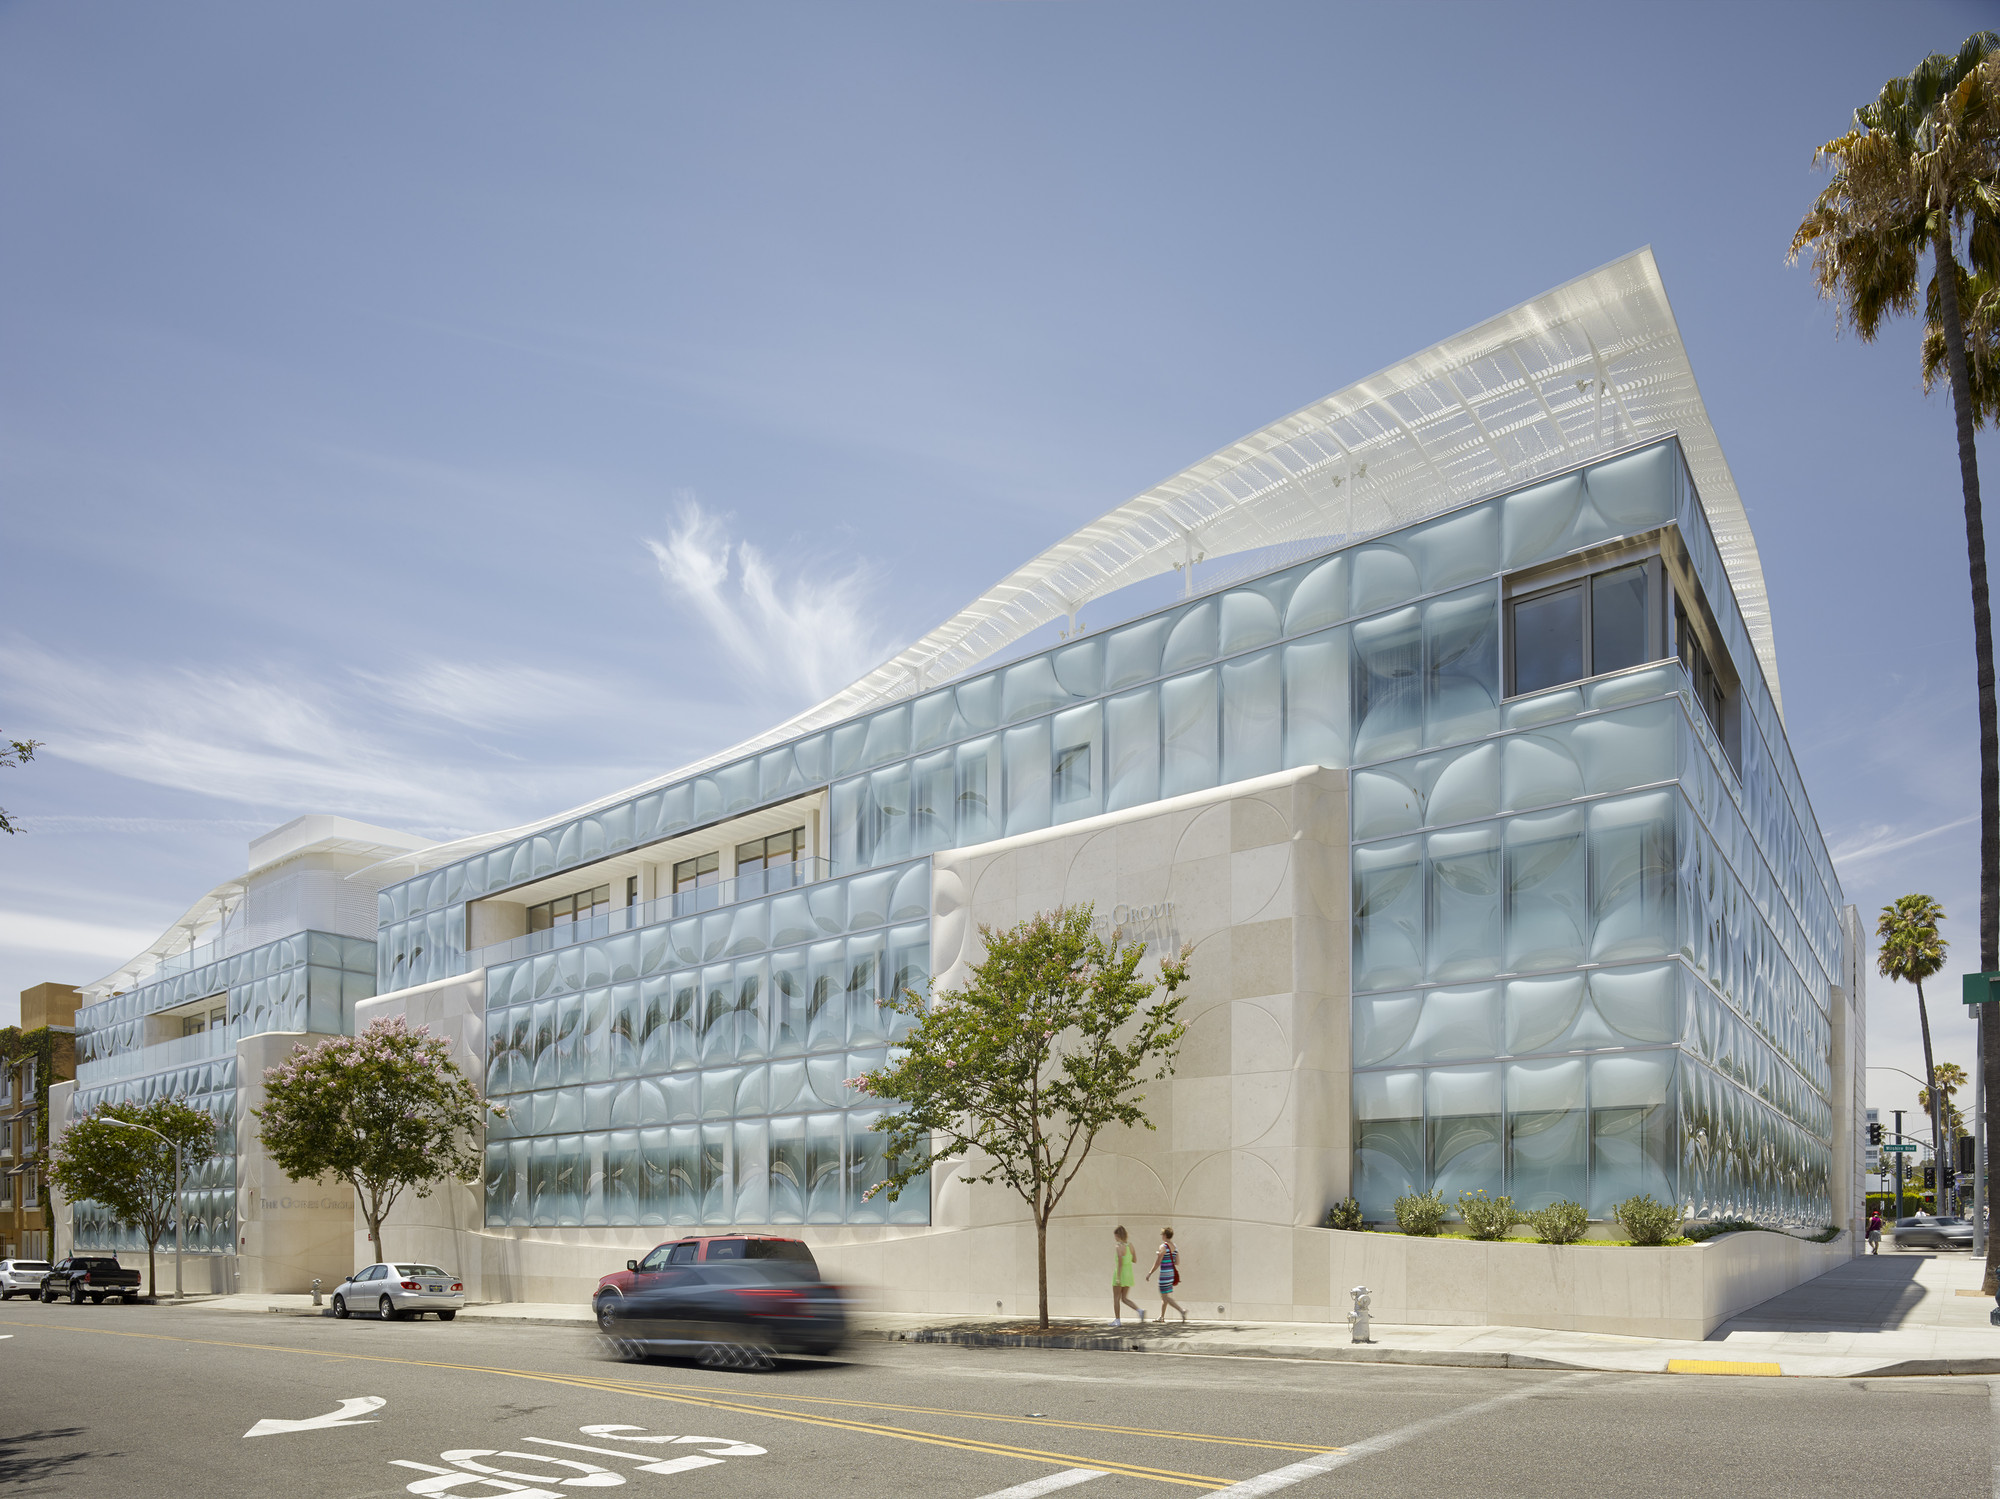 The Gores Group Headquarters. Image Courtesy of Belzberg Architects Group